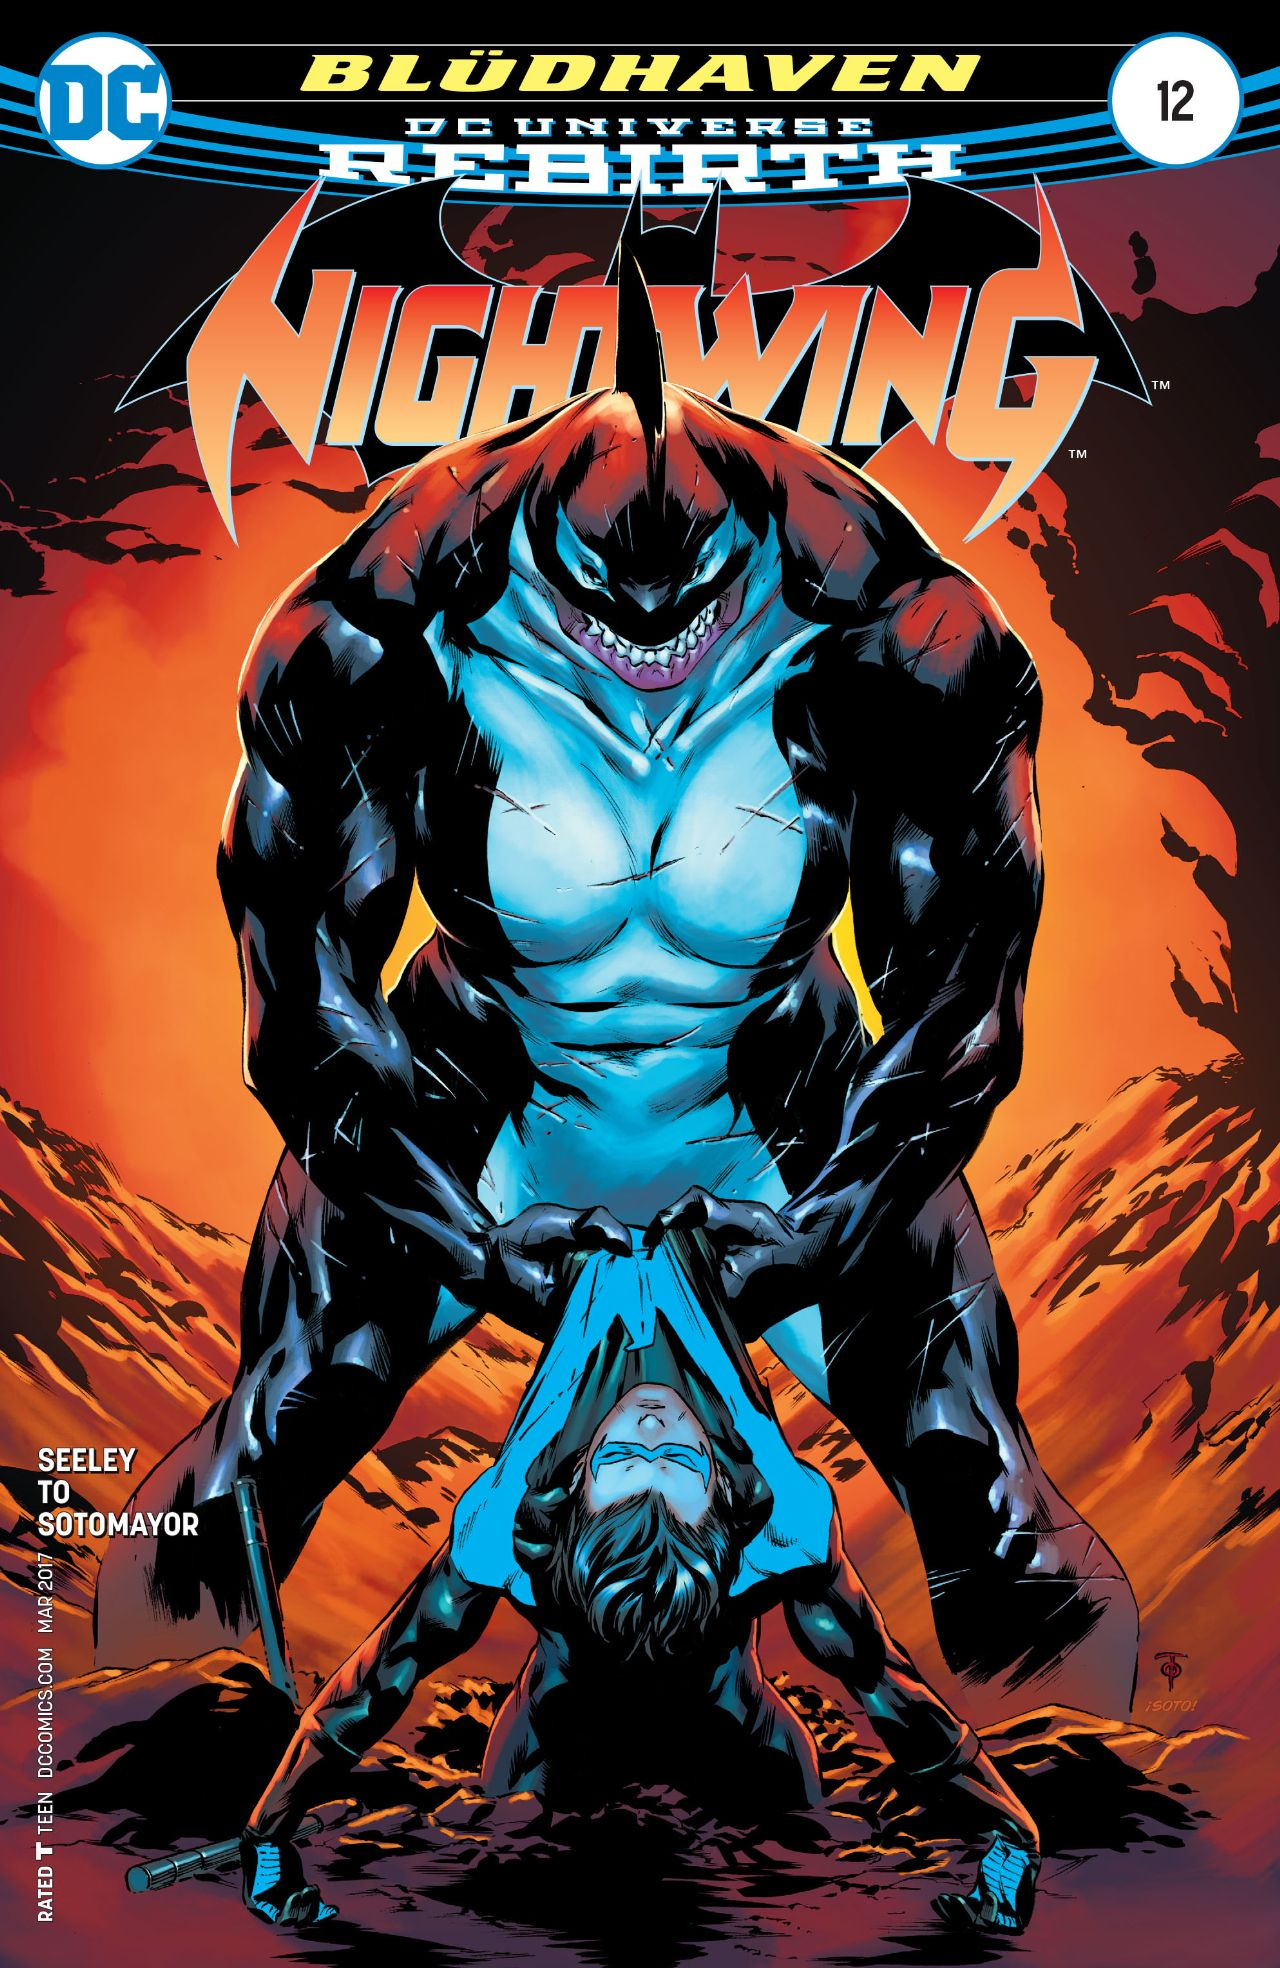 review NIGHTWING #12